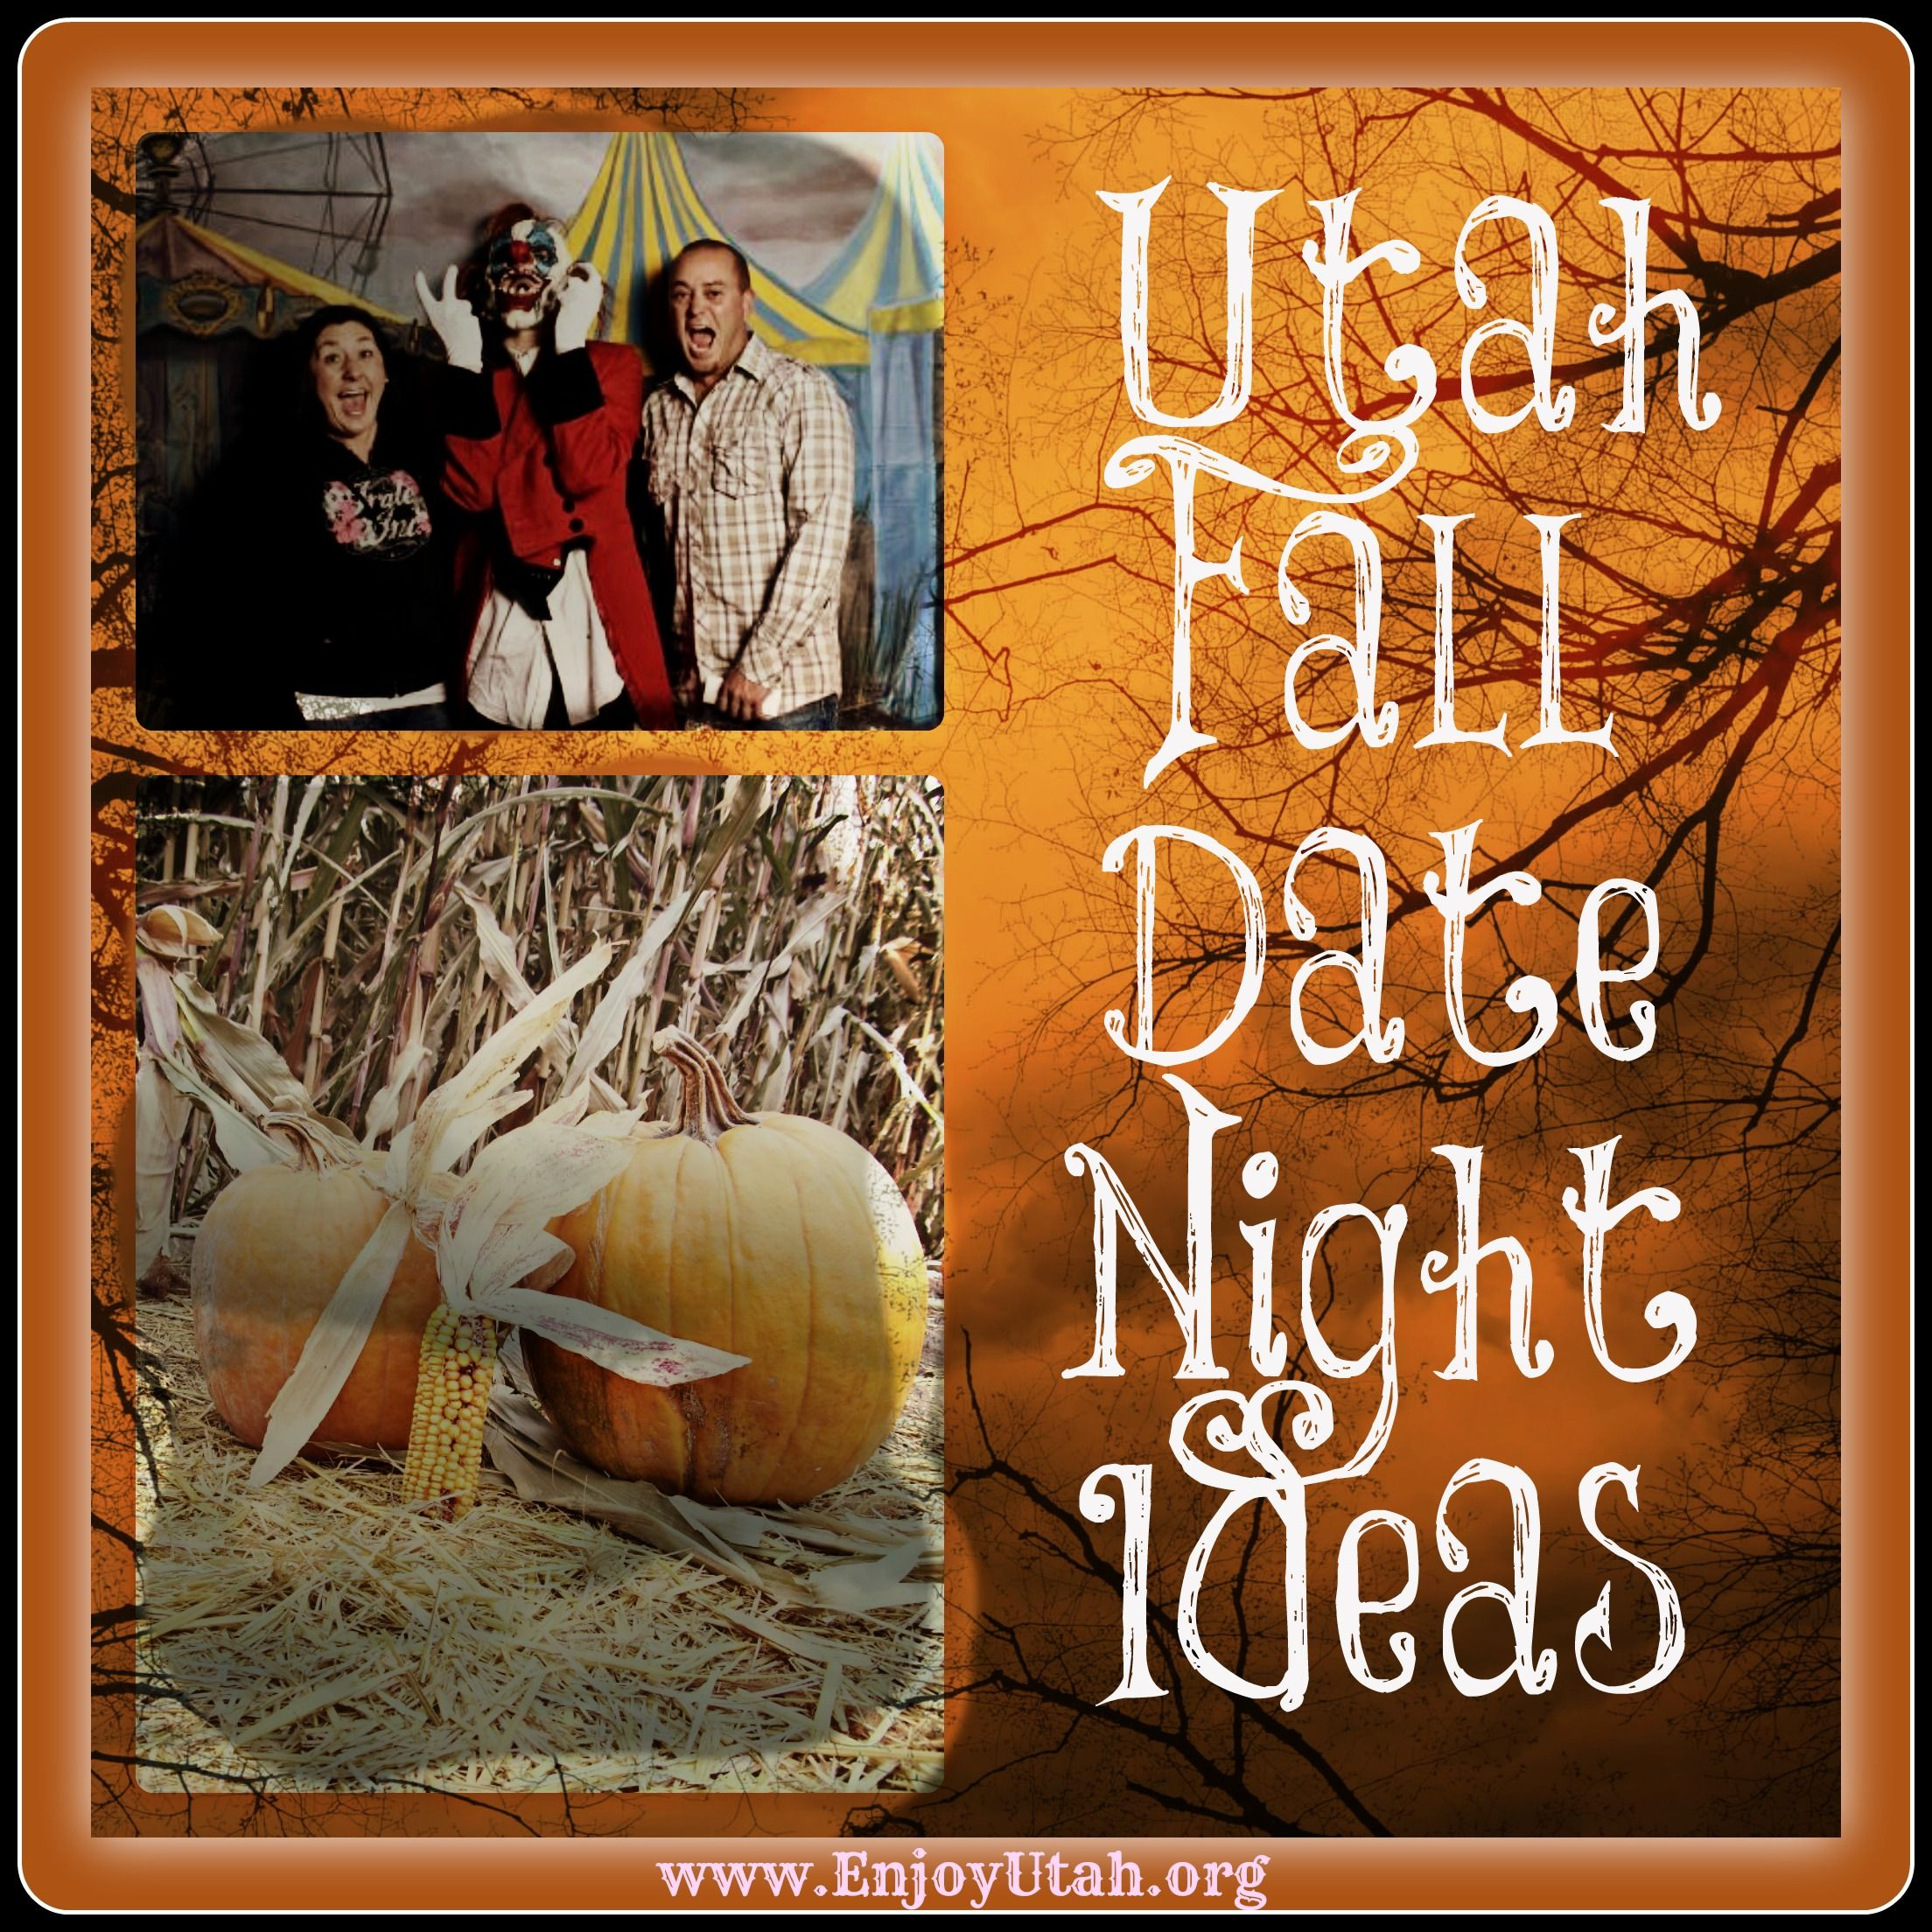 14 ideas for fun date nights in utah during the fall. | fall and